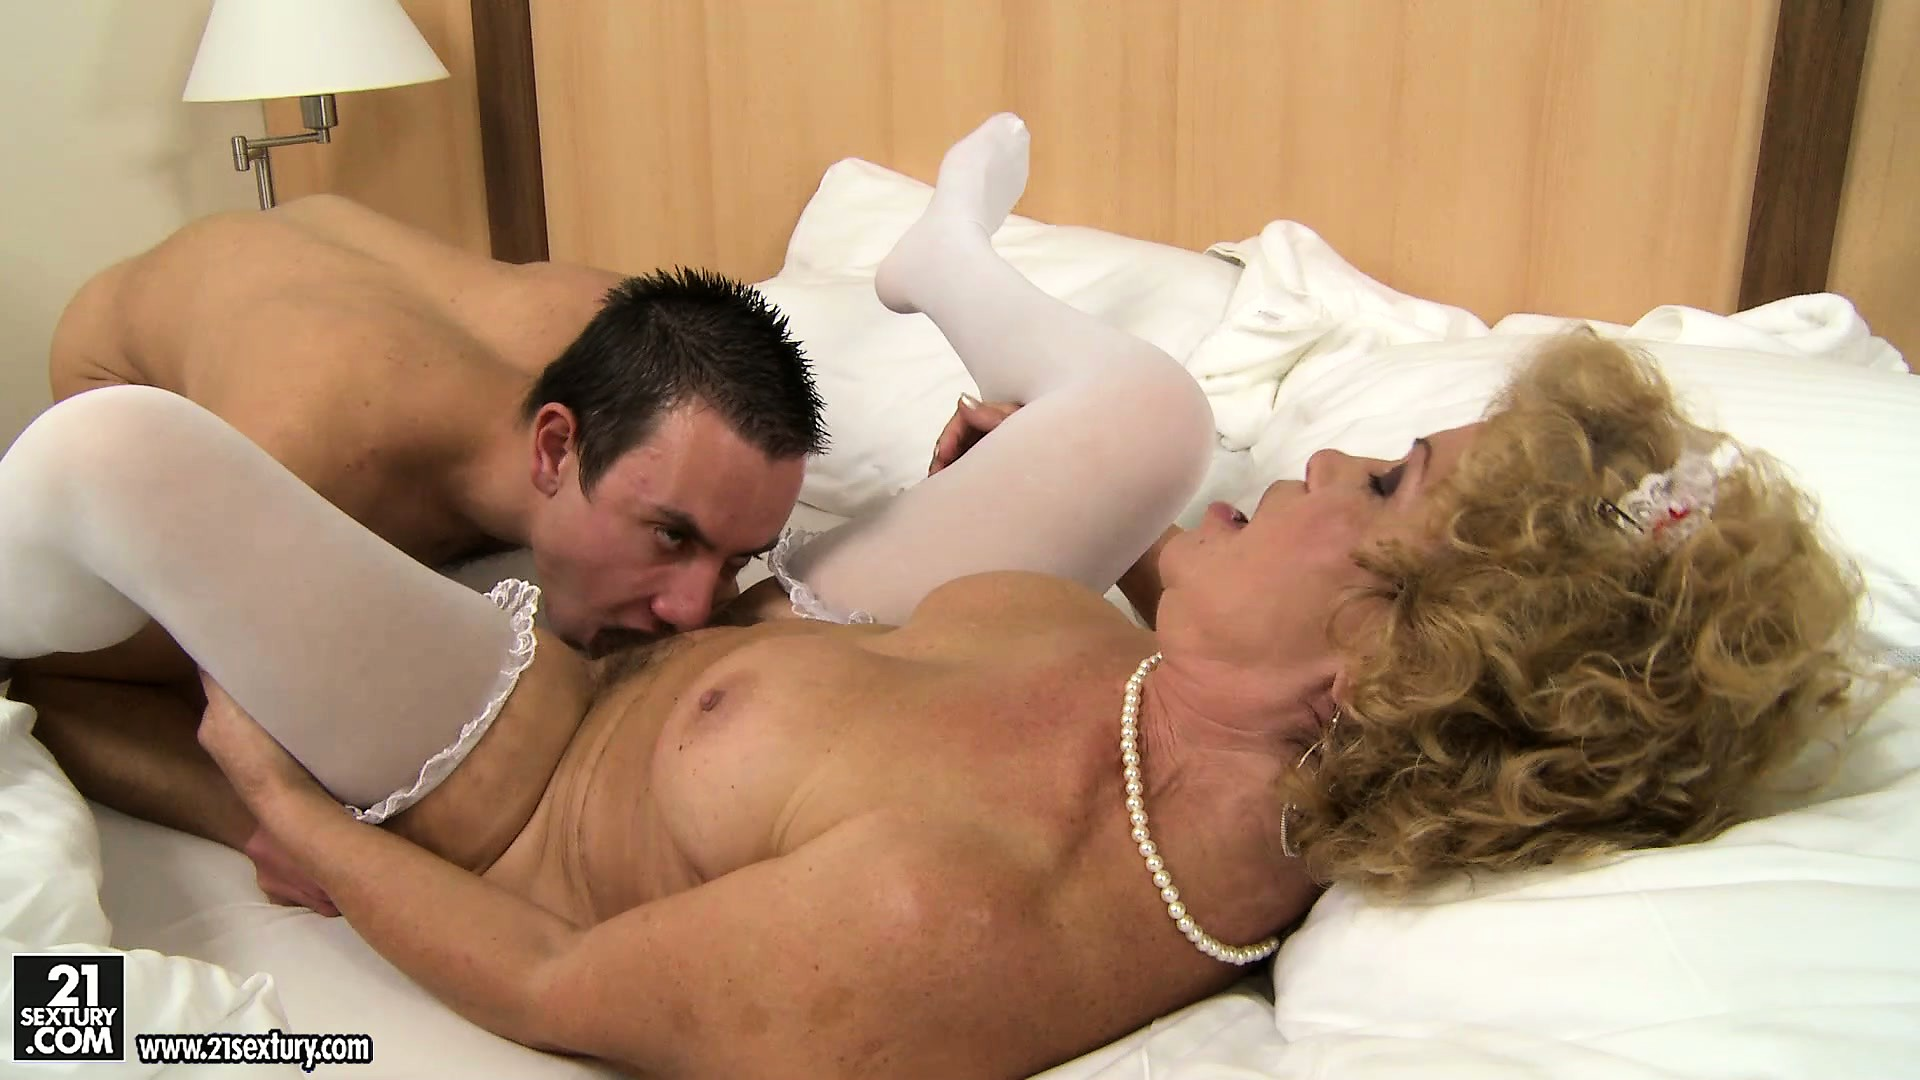 Porn Tube of The Hairy Goddess Is Disguised As An Old Maid And Gets A Young Boy To Lick Her Furriness